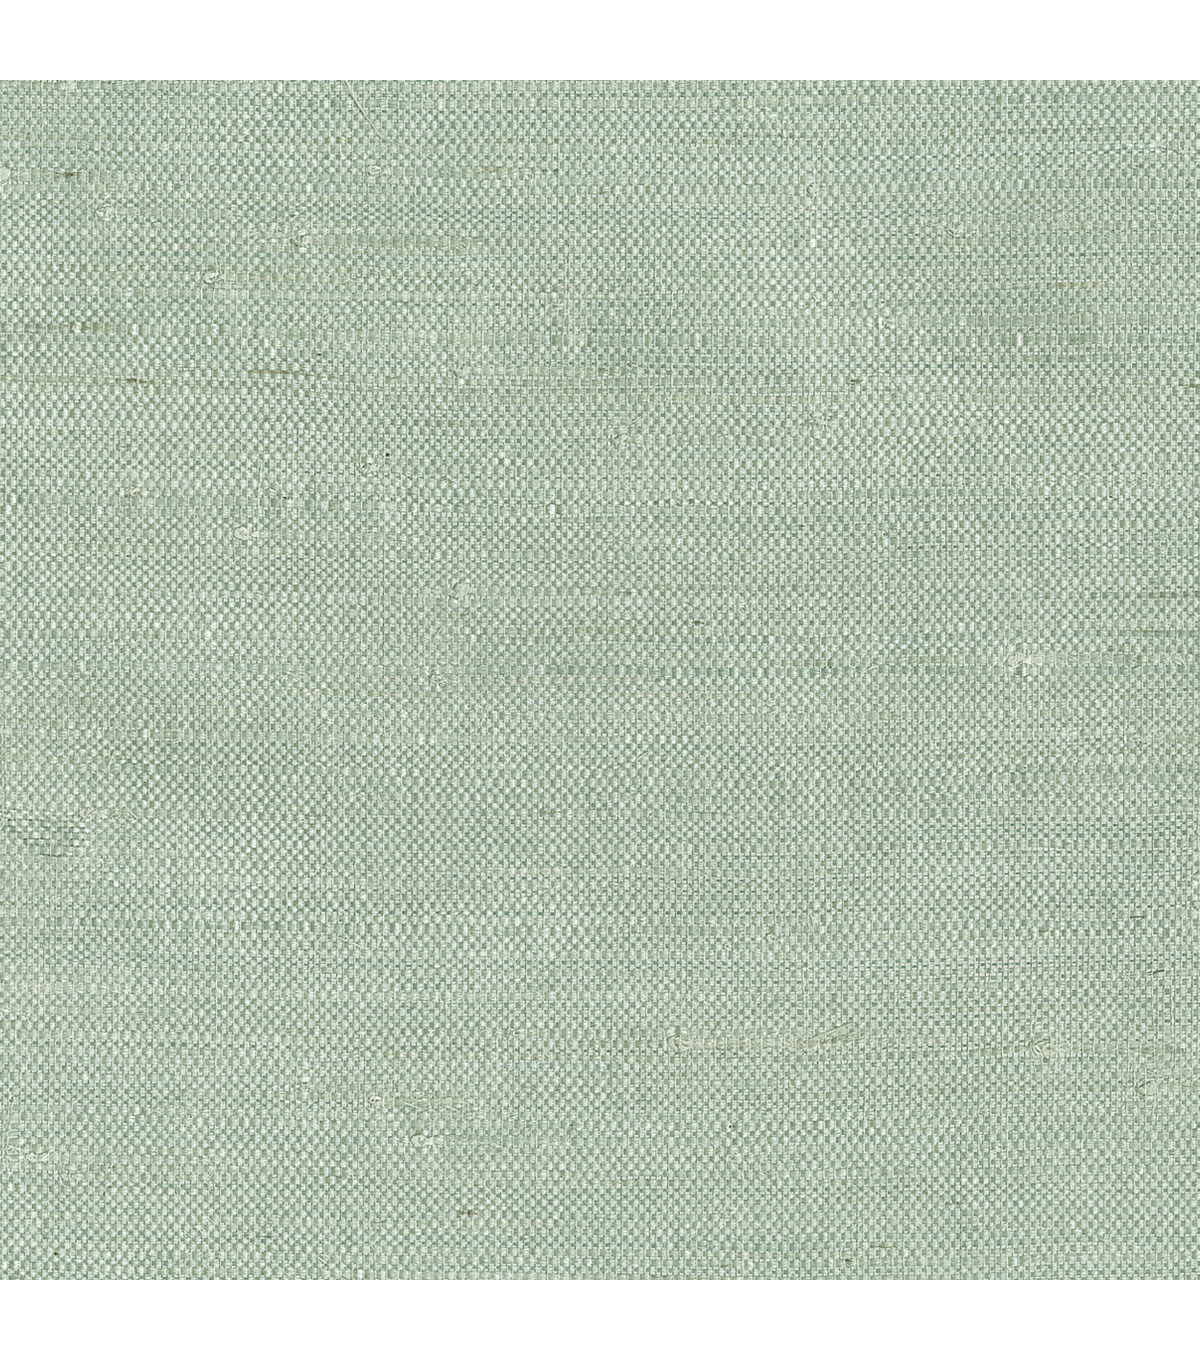 Kimi Light Green Grasscloth Wallpaper Sample